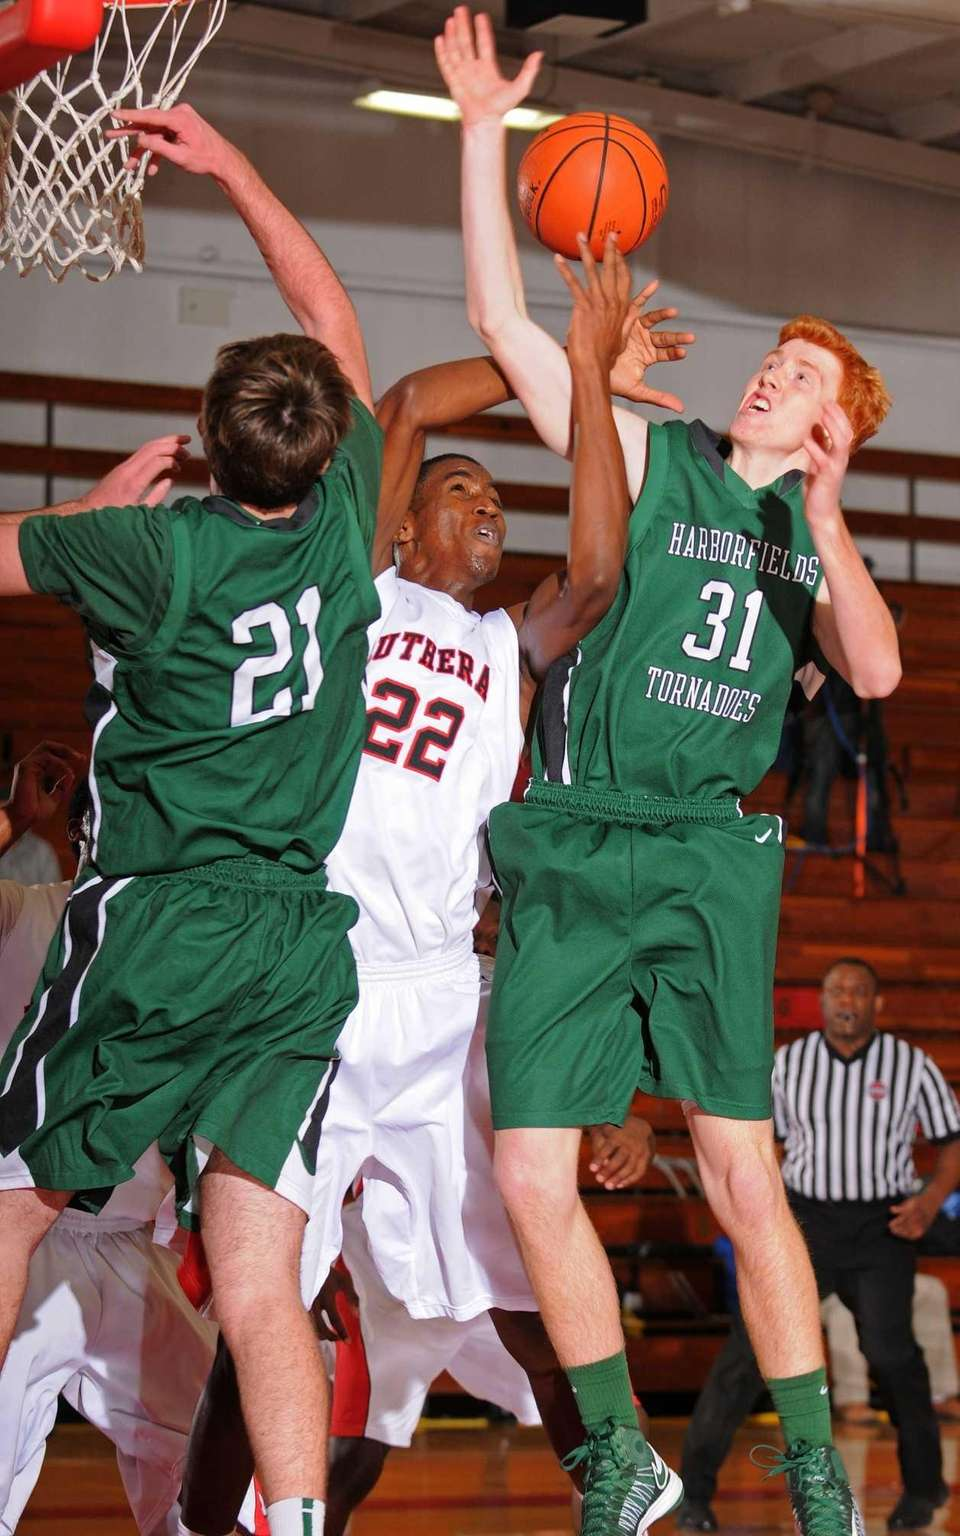 Lutheran's Kentan Facey, center, battles for a rebound